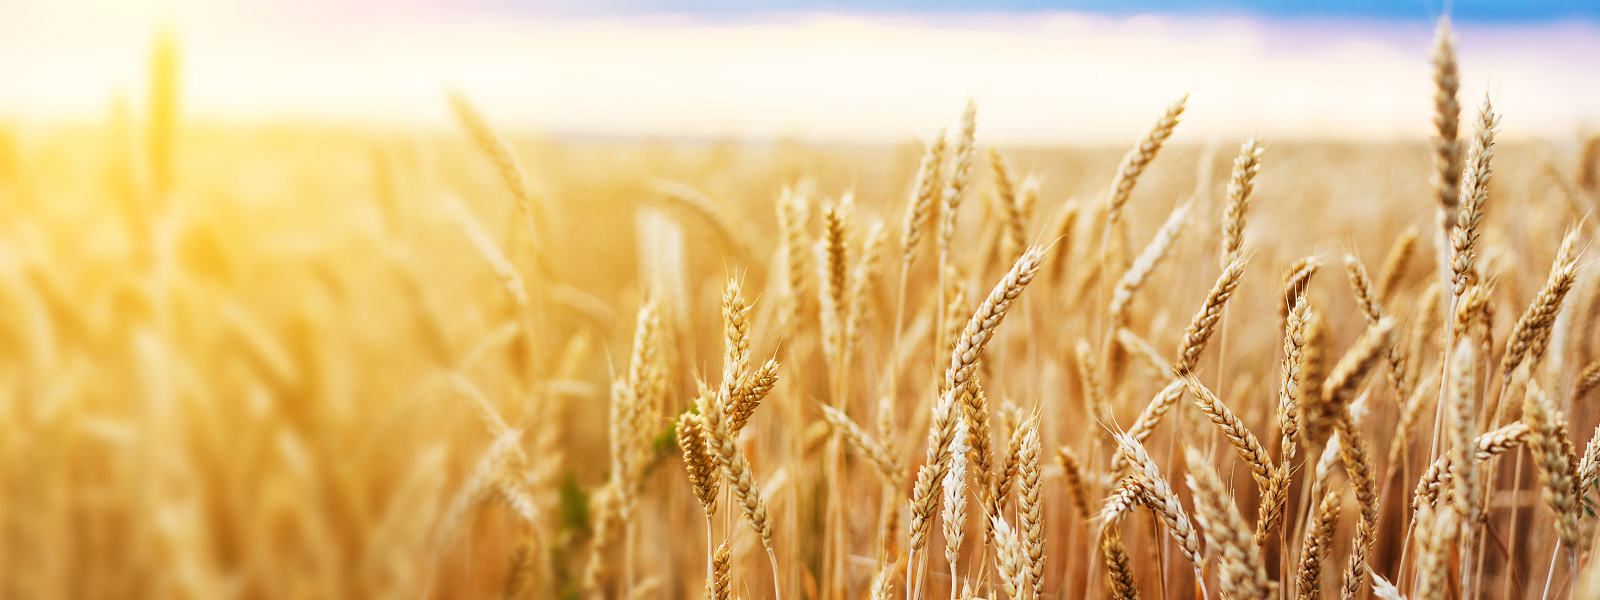 Shavuot: Let kindness be our guide